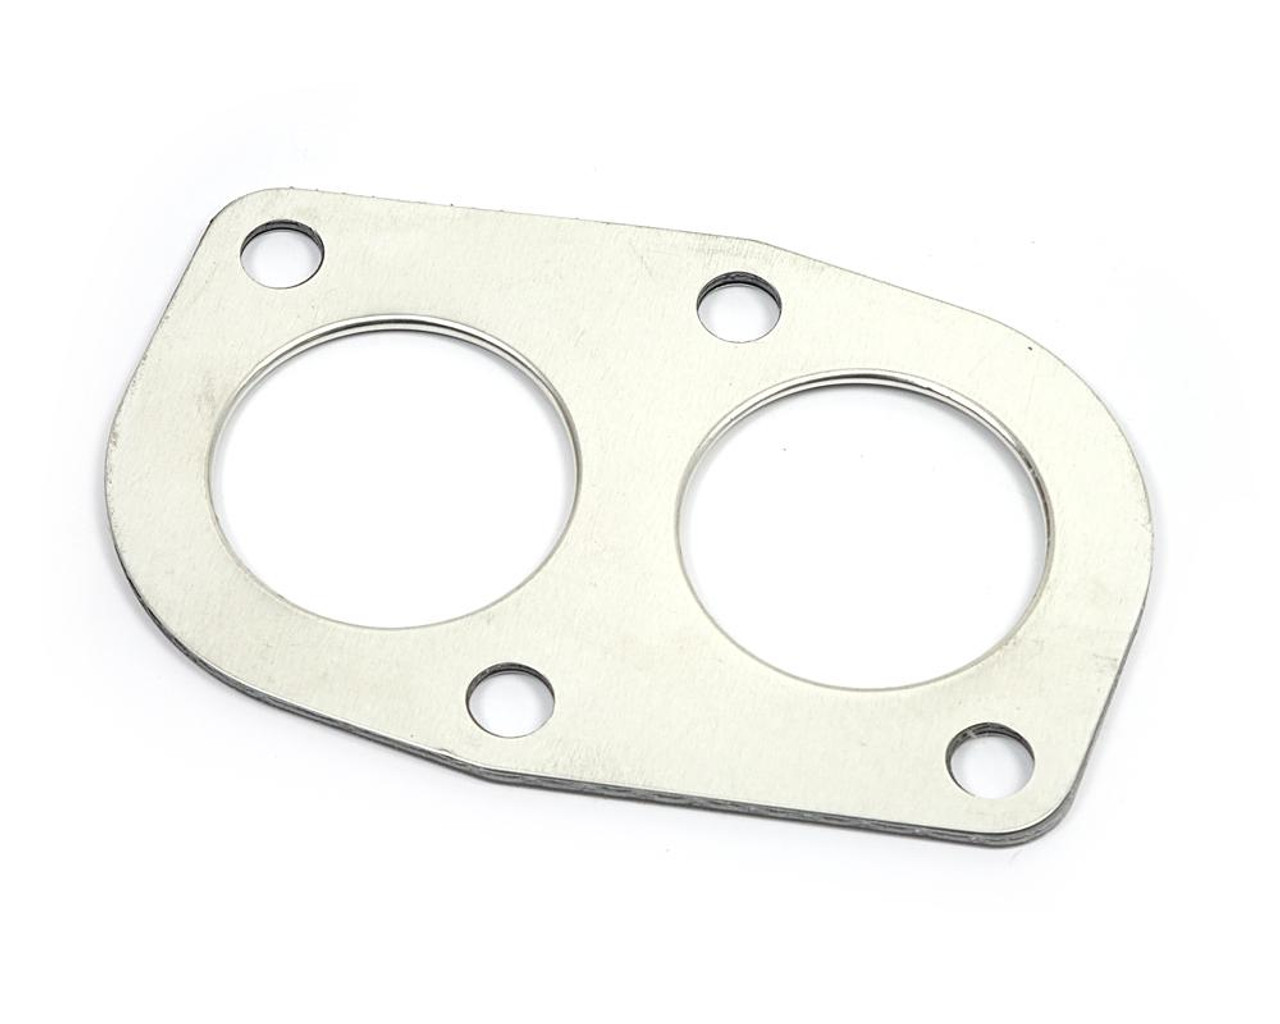 Exhaust Flange Gasket at Down Pipe - 1966-74 and 1979 Federal